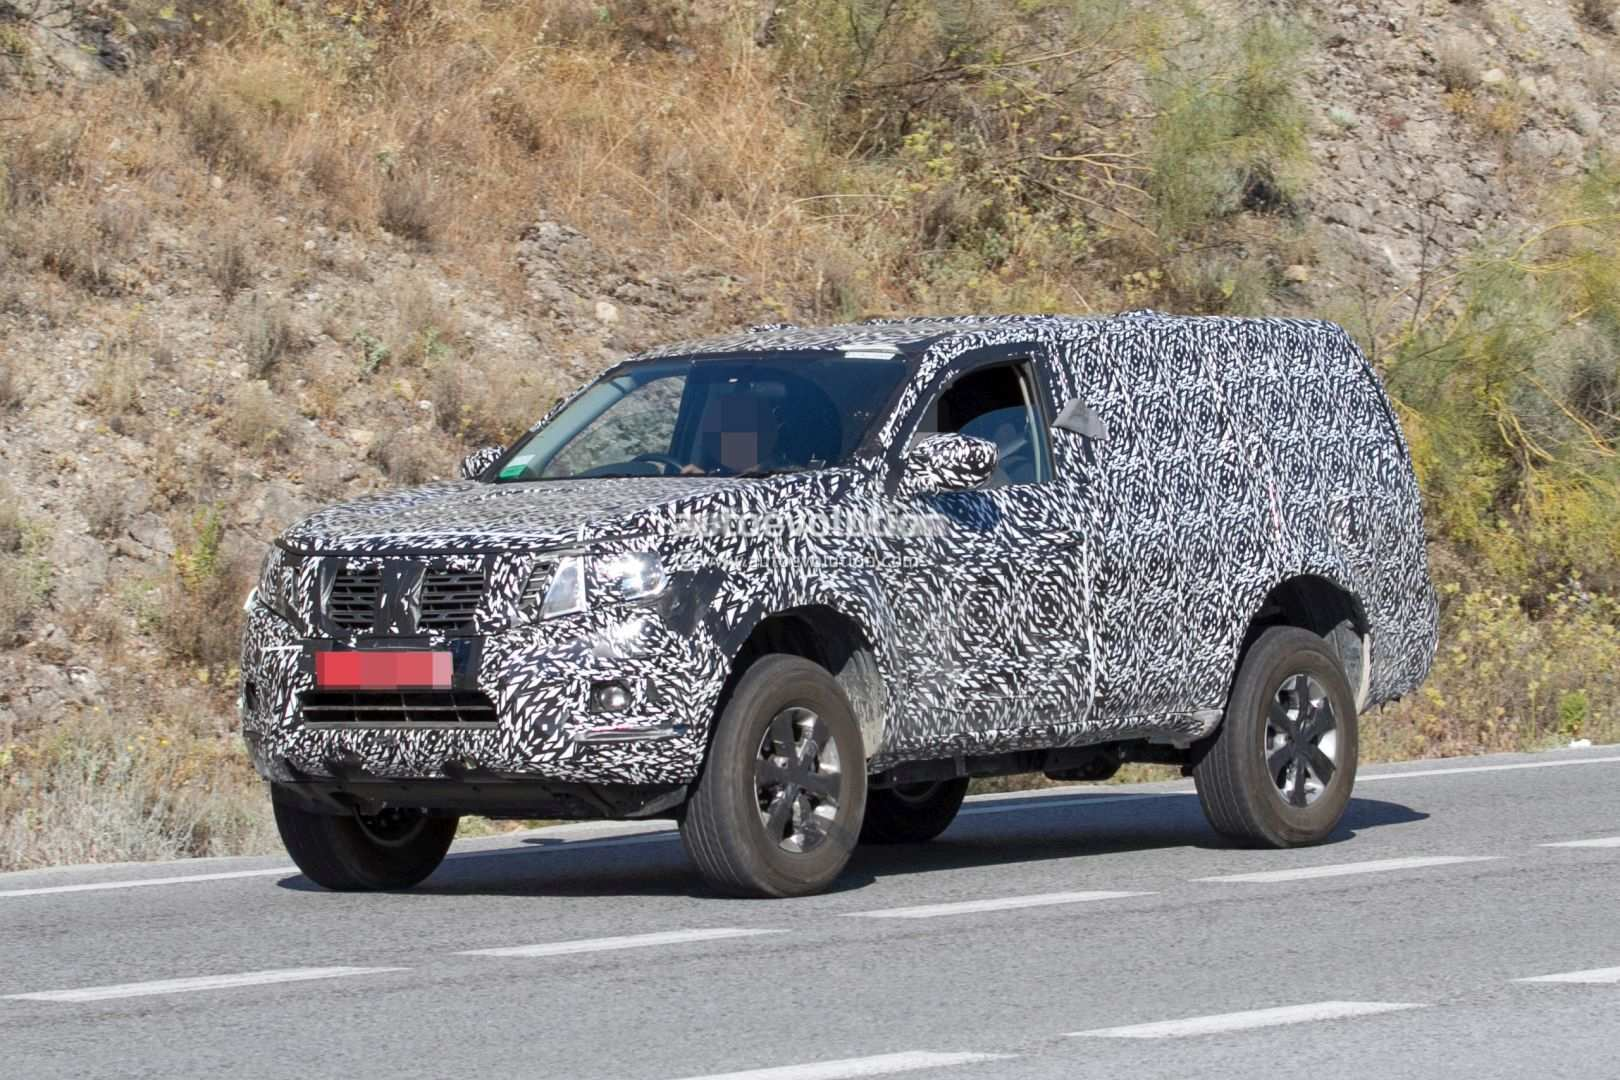 42 A 2019 Nissan Pathfinder Spy Shots Overview